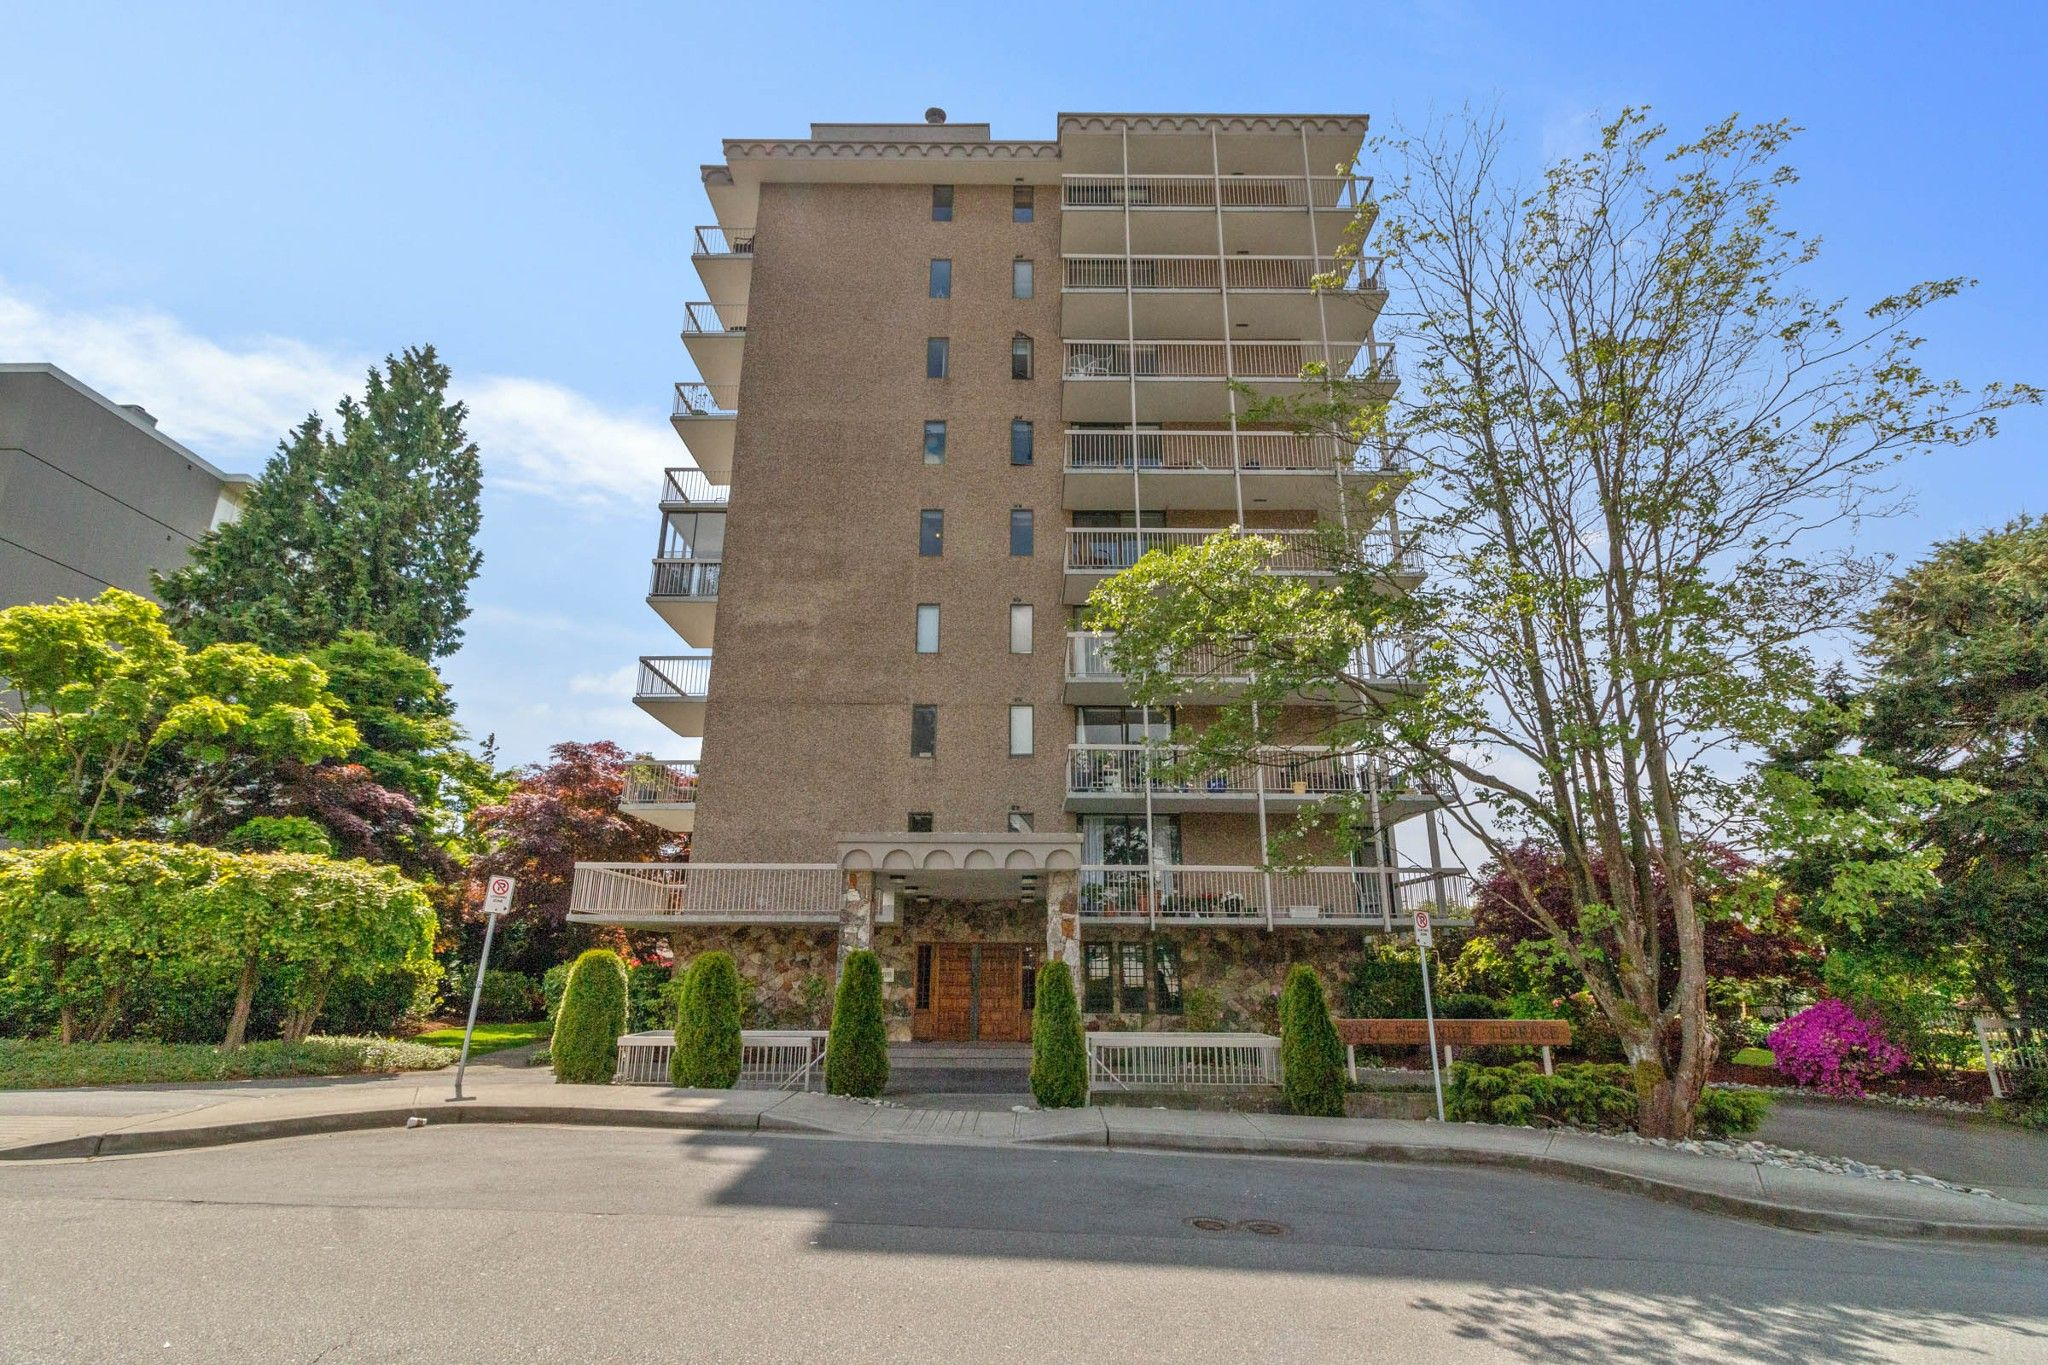 """Main Photo: 503 1390 DUCHESS Avenue in West Vancouver: Ambleside Condo for sale in """"WESTVIEW TERRACE"""" : MLS®# R2579675"""